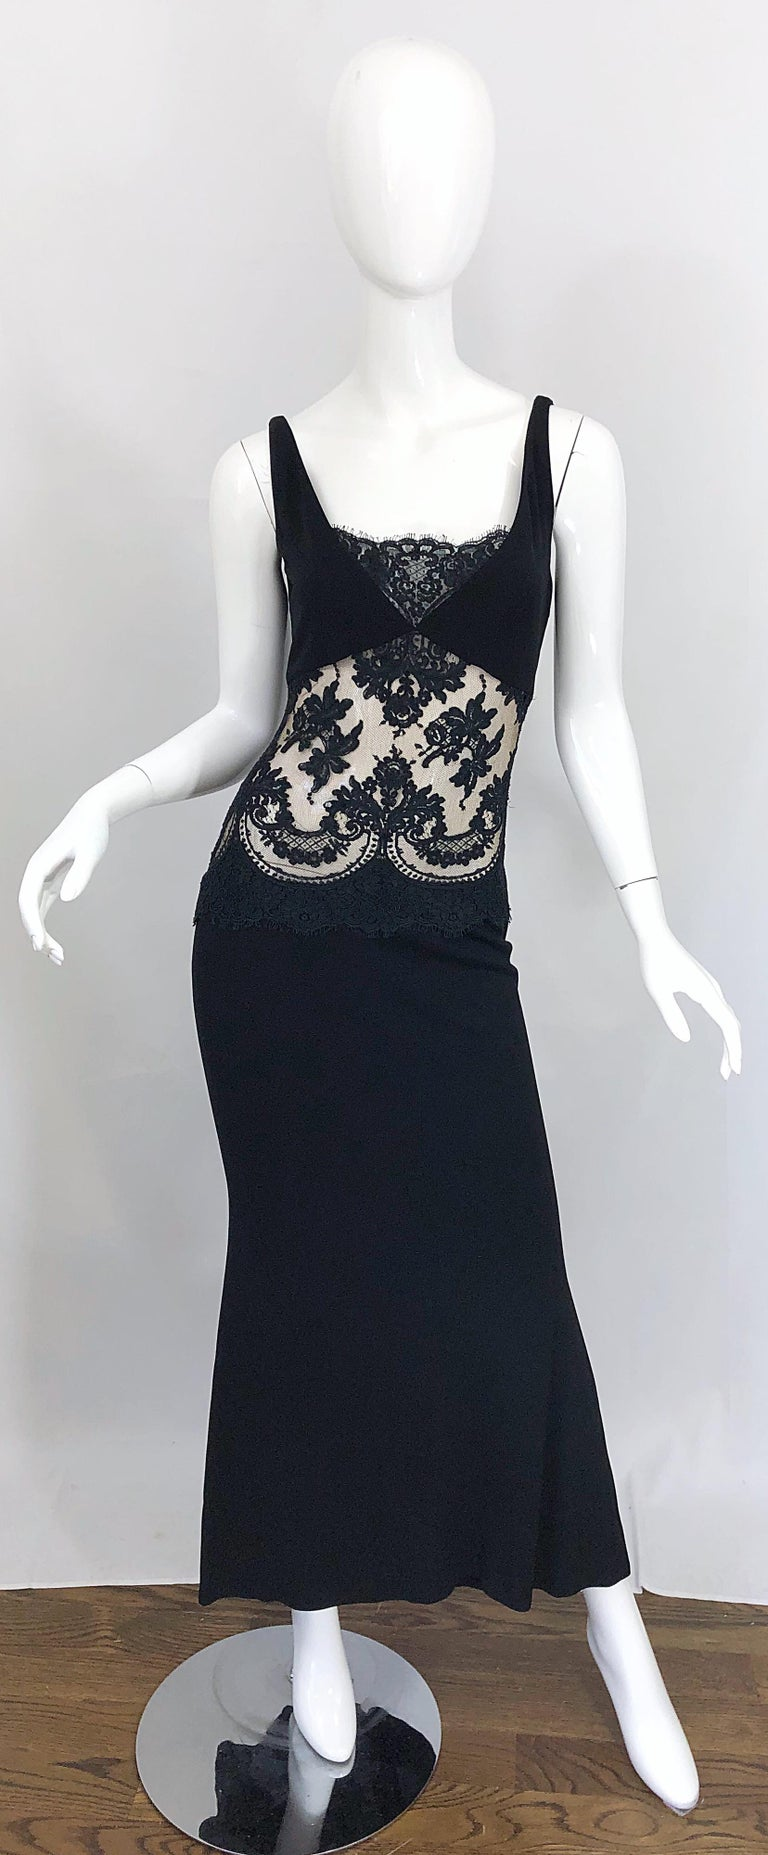 Sexy 1990s RANDOLPH DUKE Couture black cut-out evening gown dress! Features a soft double ply rayon/silk blend fabric that offers some stretch. Sheer black lace panels at front and back reveal just the right amount of skin. Tailored bodice with a